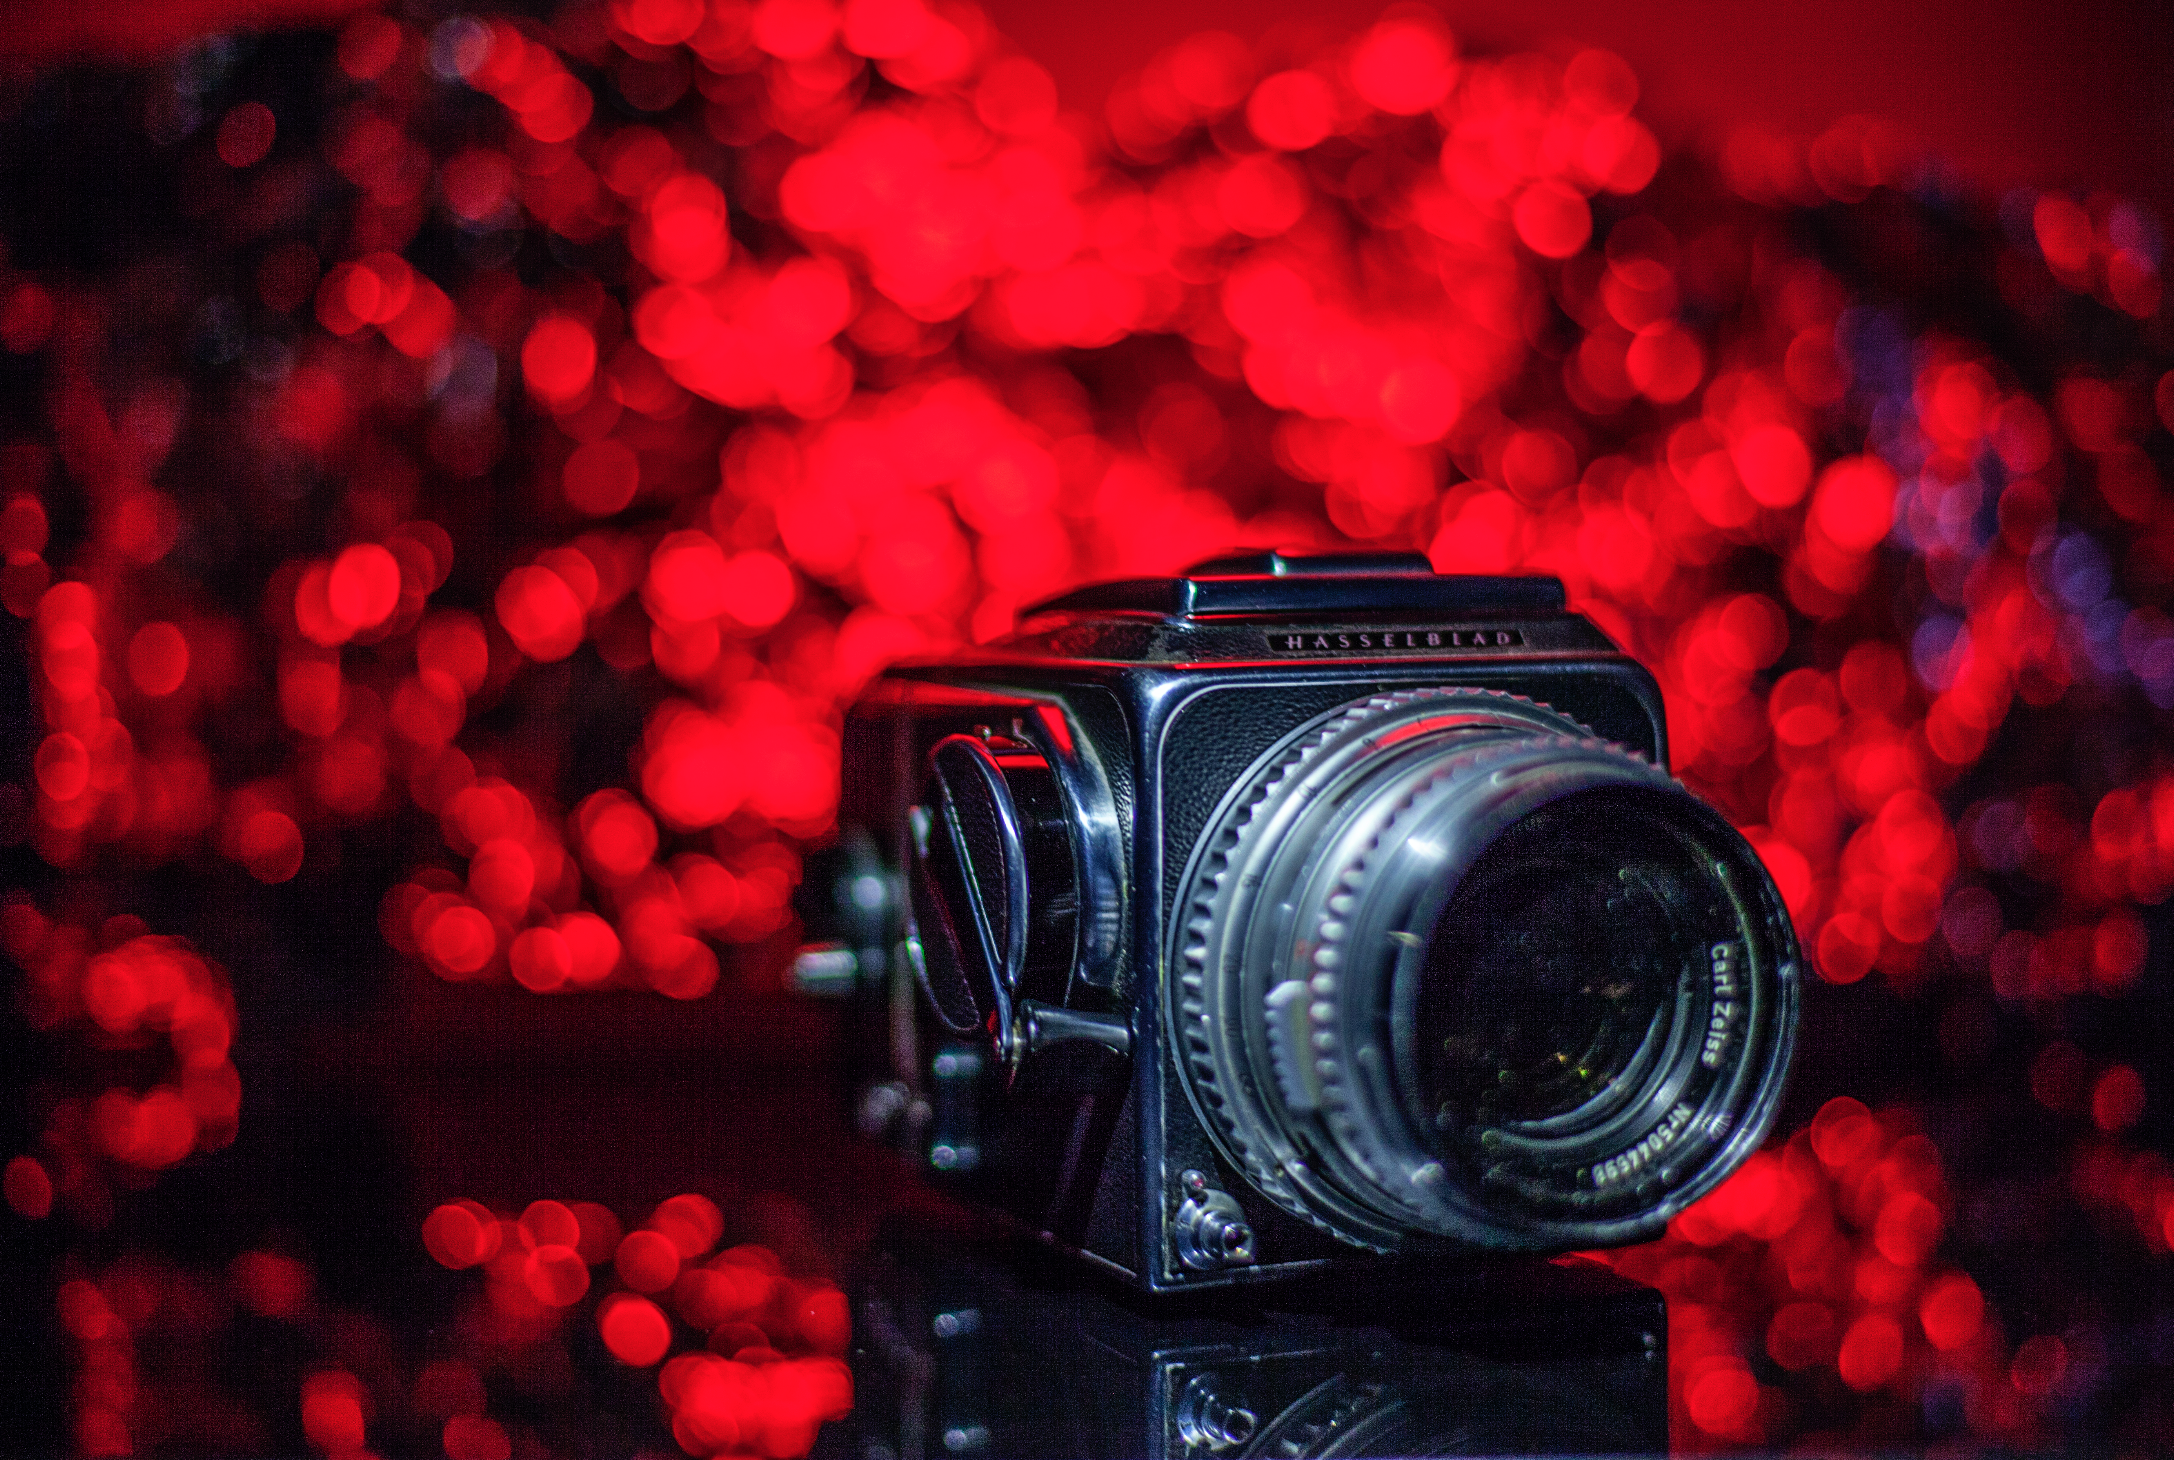 bokeh photograph. Shooting products for e-commerce websites